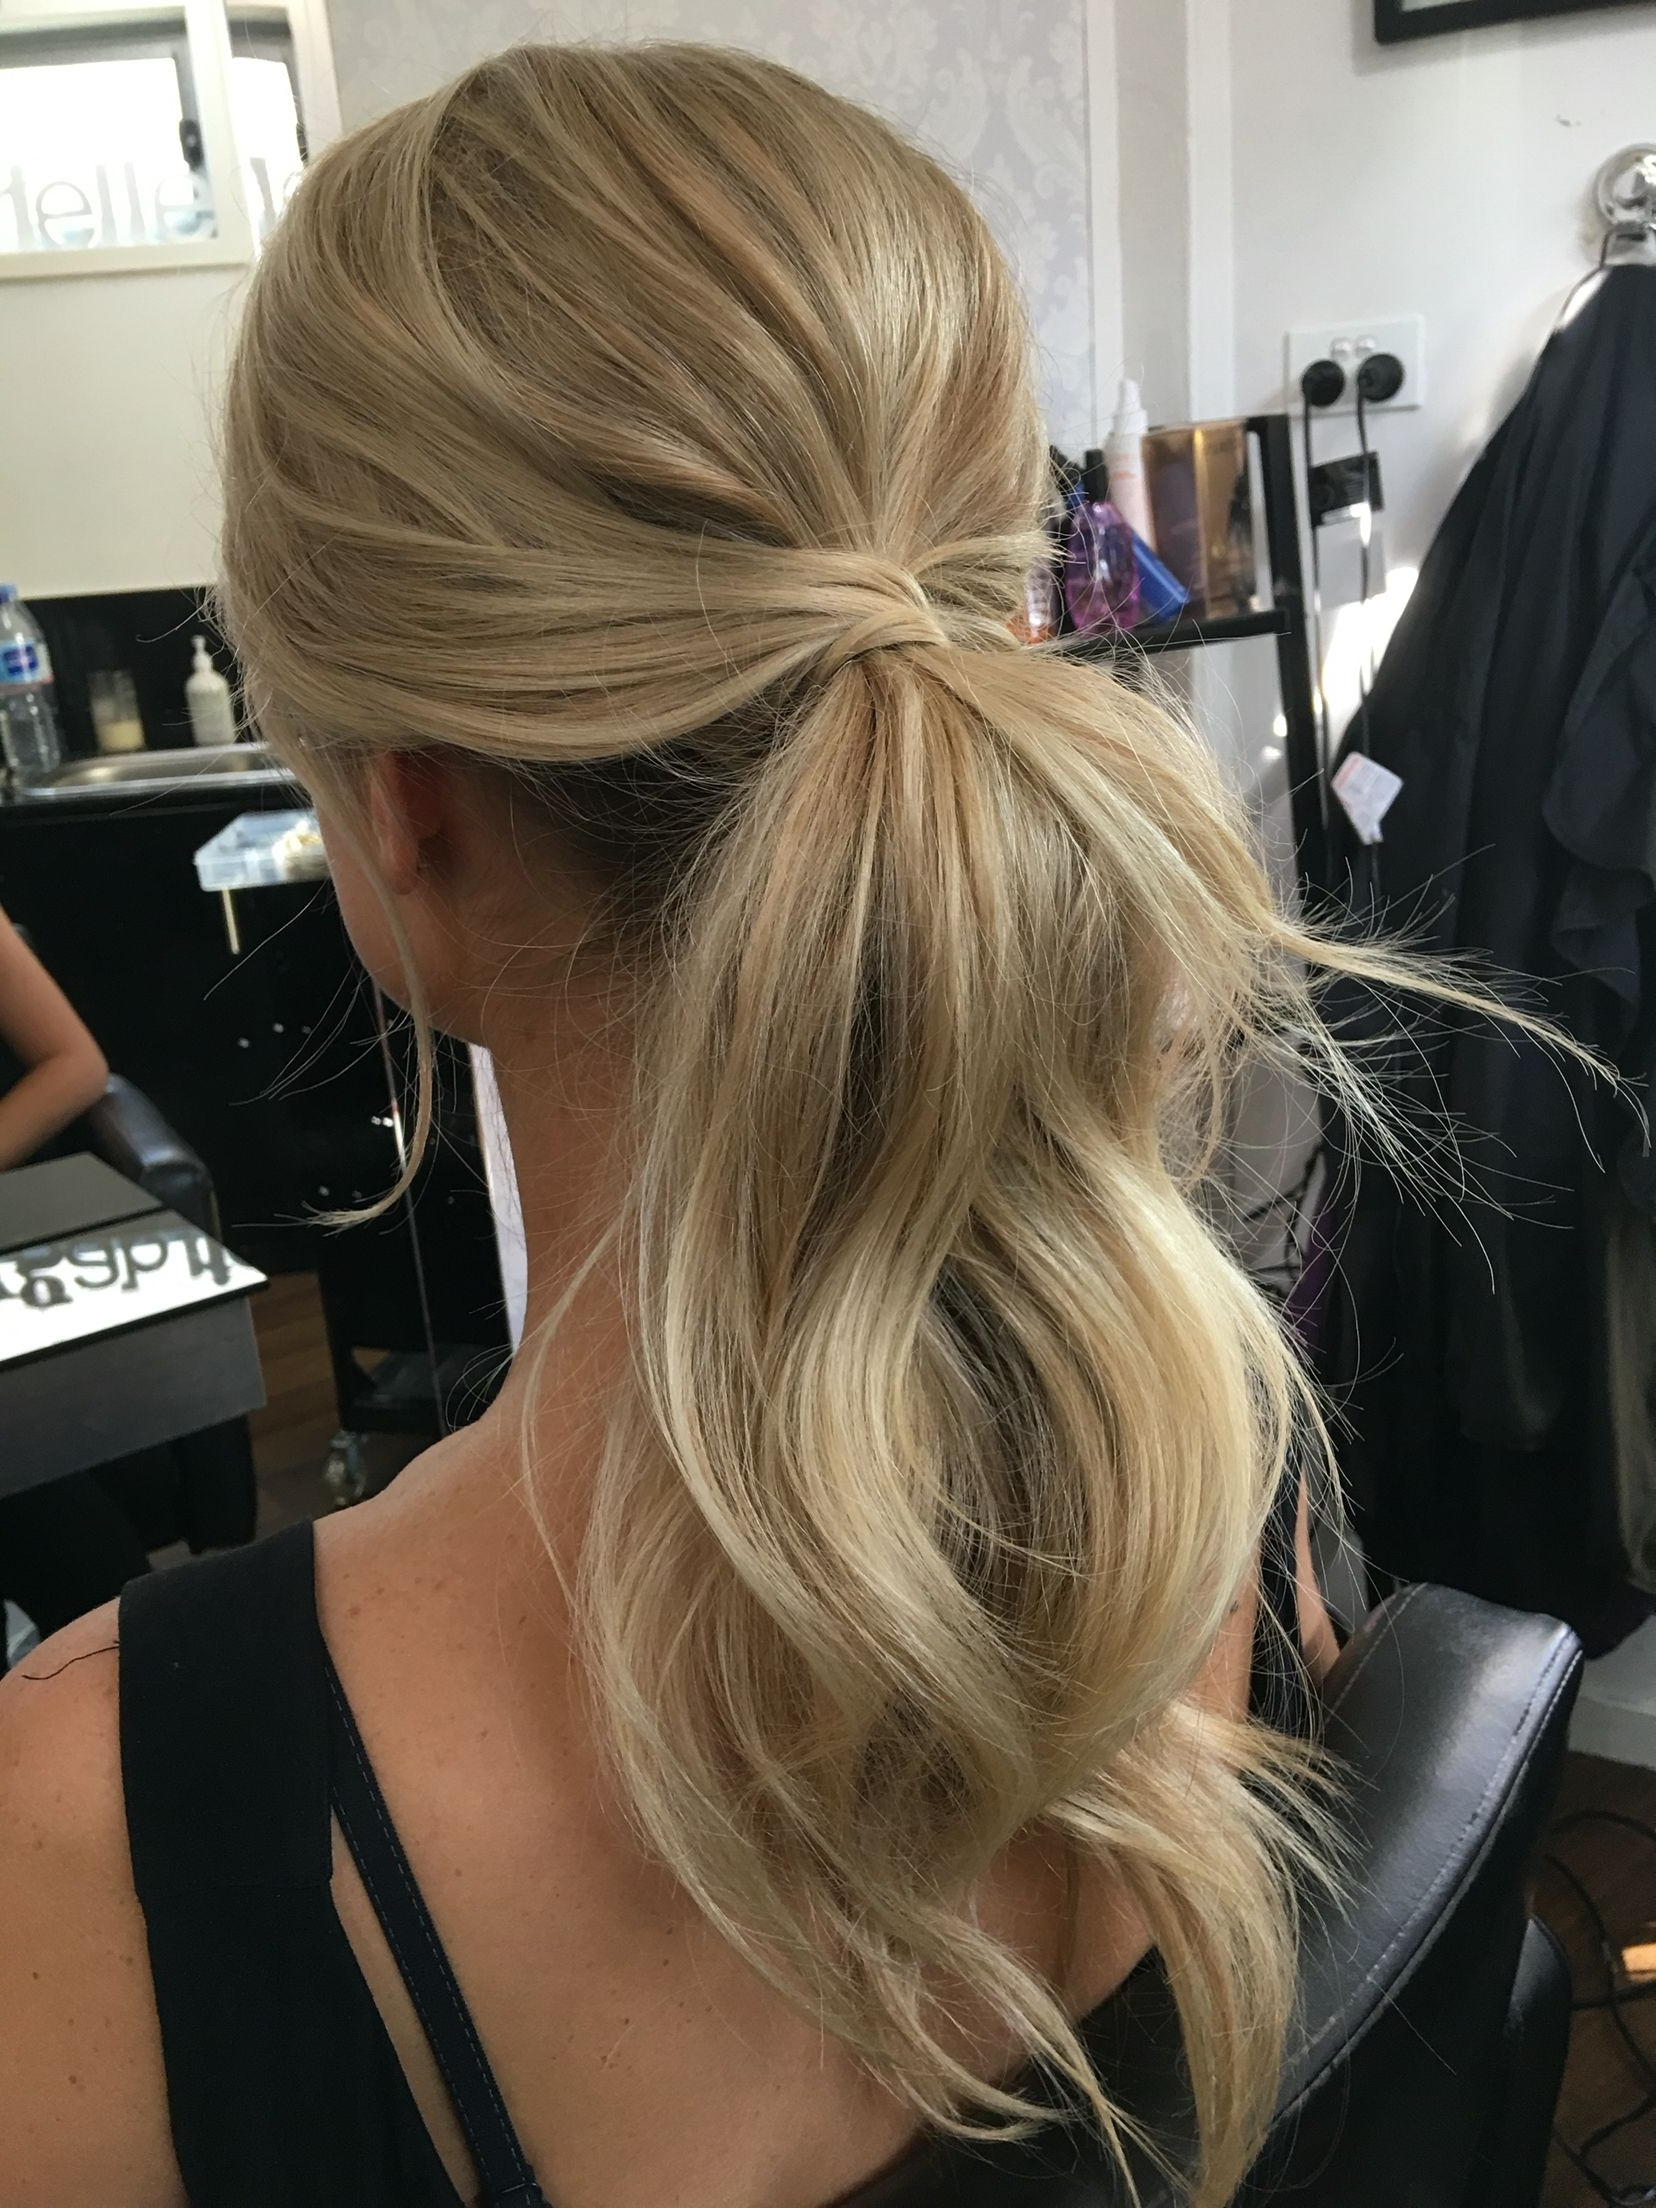 Wedding Hairstyles (View 6 of 20)